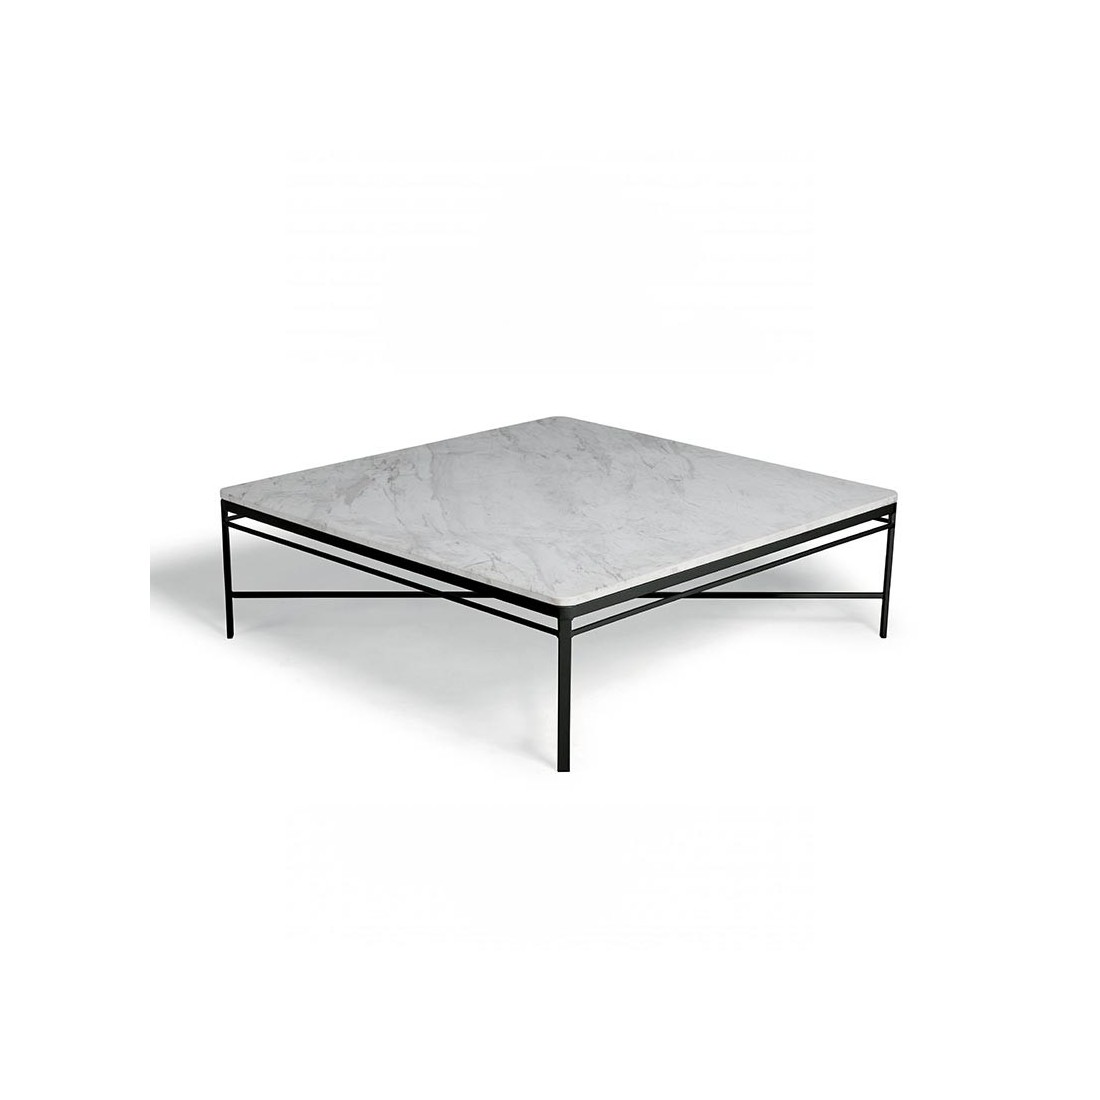 table basse carr e pour votre terrasse et jardin collection 1950 triconfort. Black Bedroom Furniture Sets. Home Design Ideas